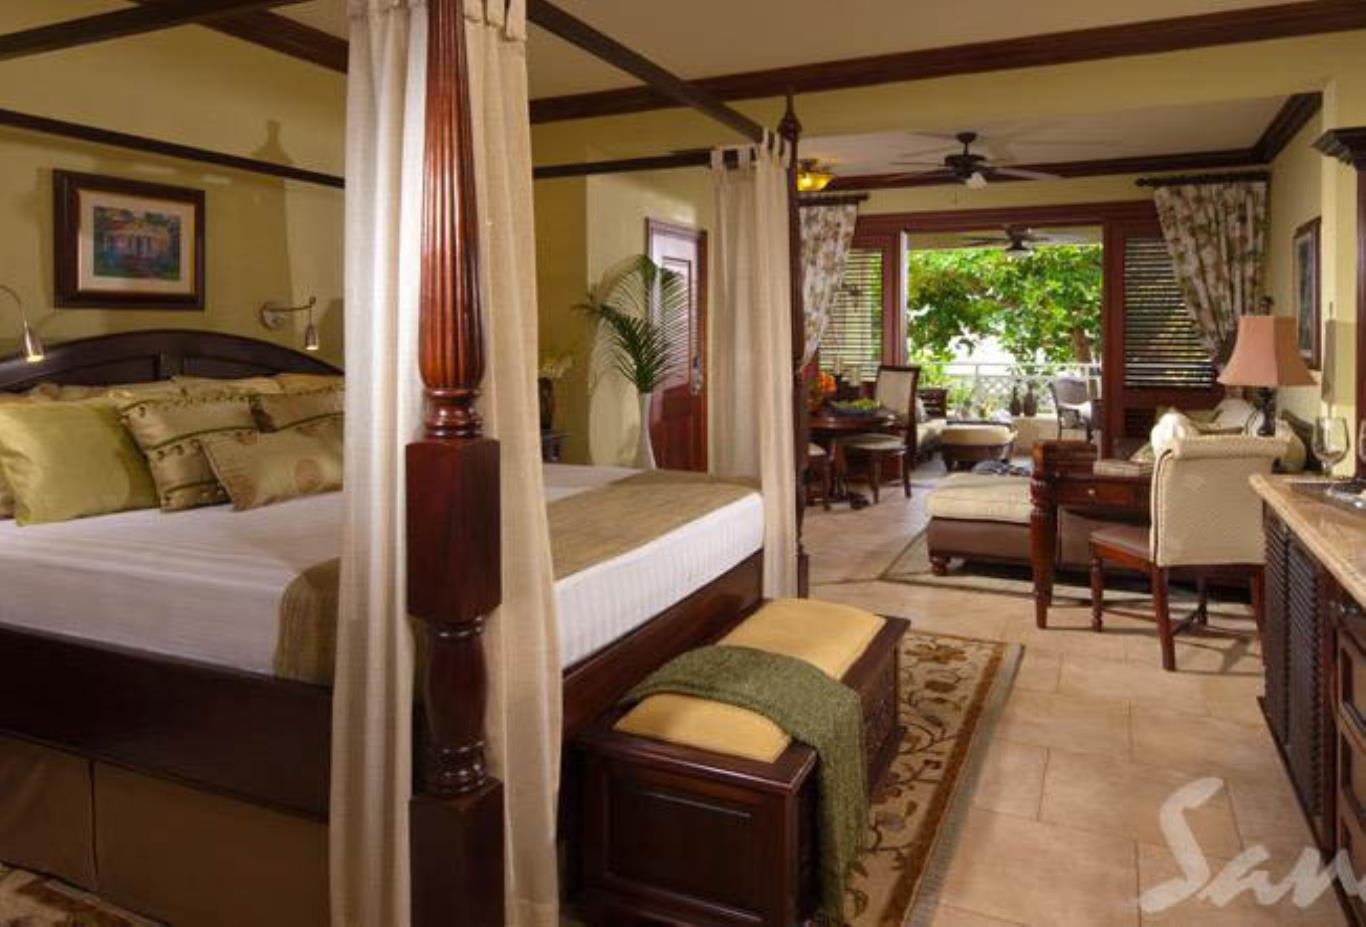 Crystal Lagoon Honeymoon One Bedroom Butler Suite with Private Stairway - PS